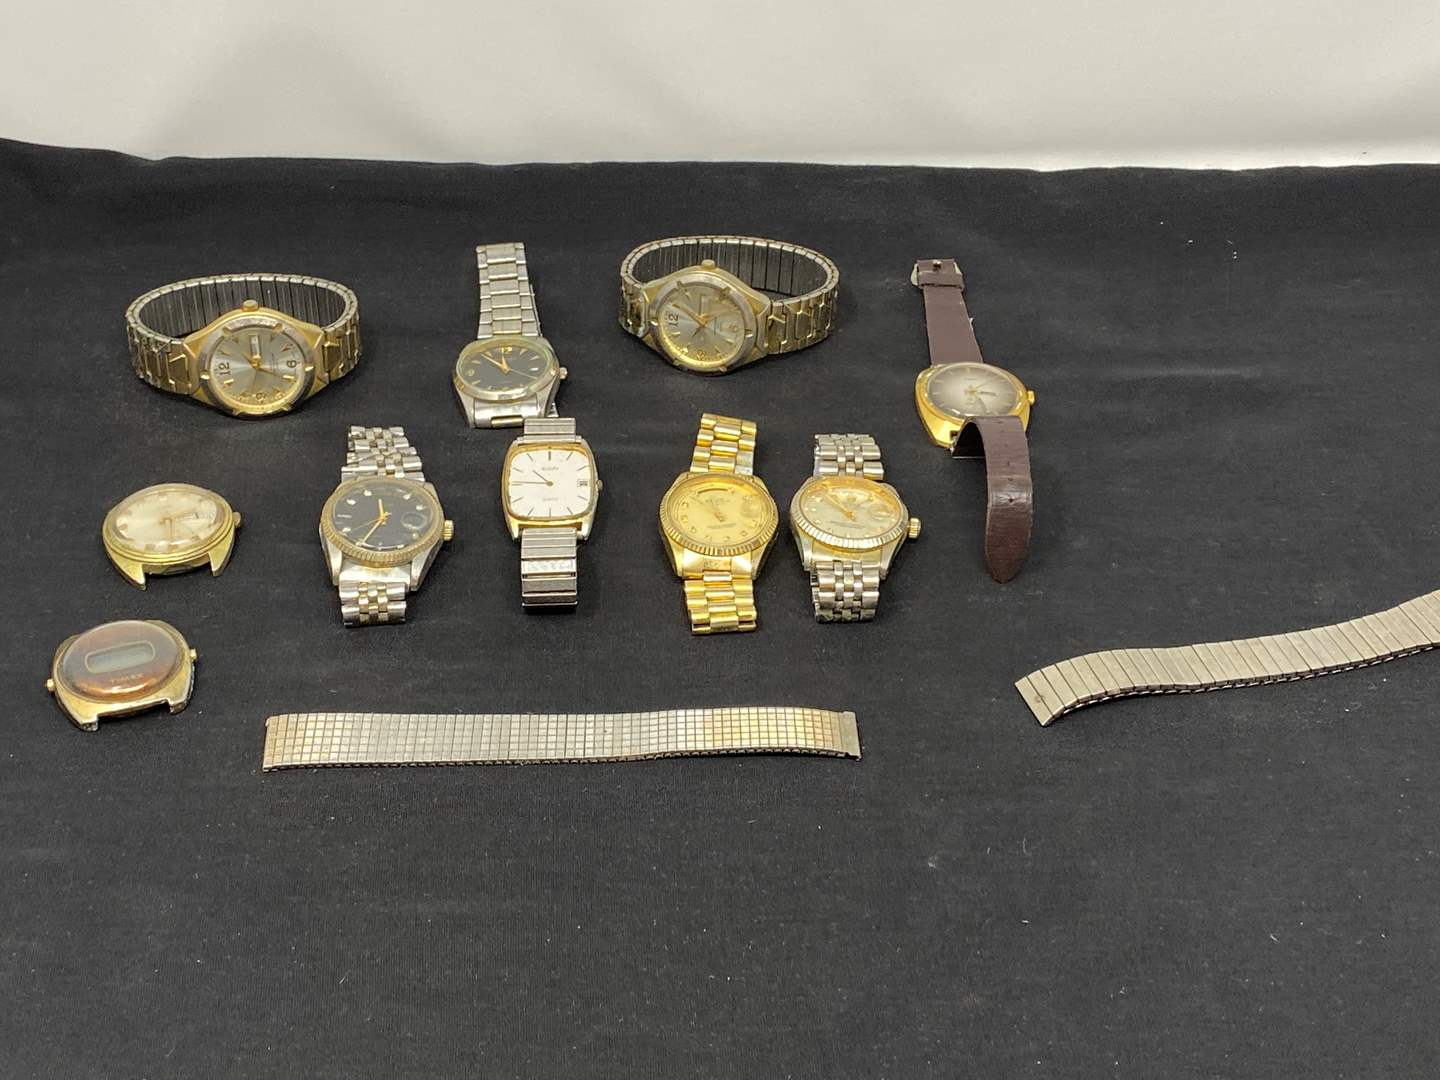 Lot # 130 - Vintage Watches: Rolex (Authentic?), Timex, Elgin, Wrangler & More (main image)